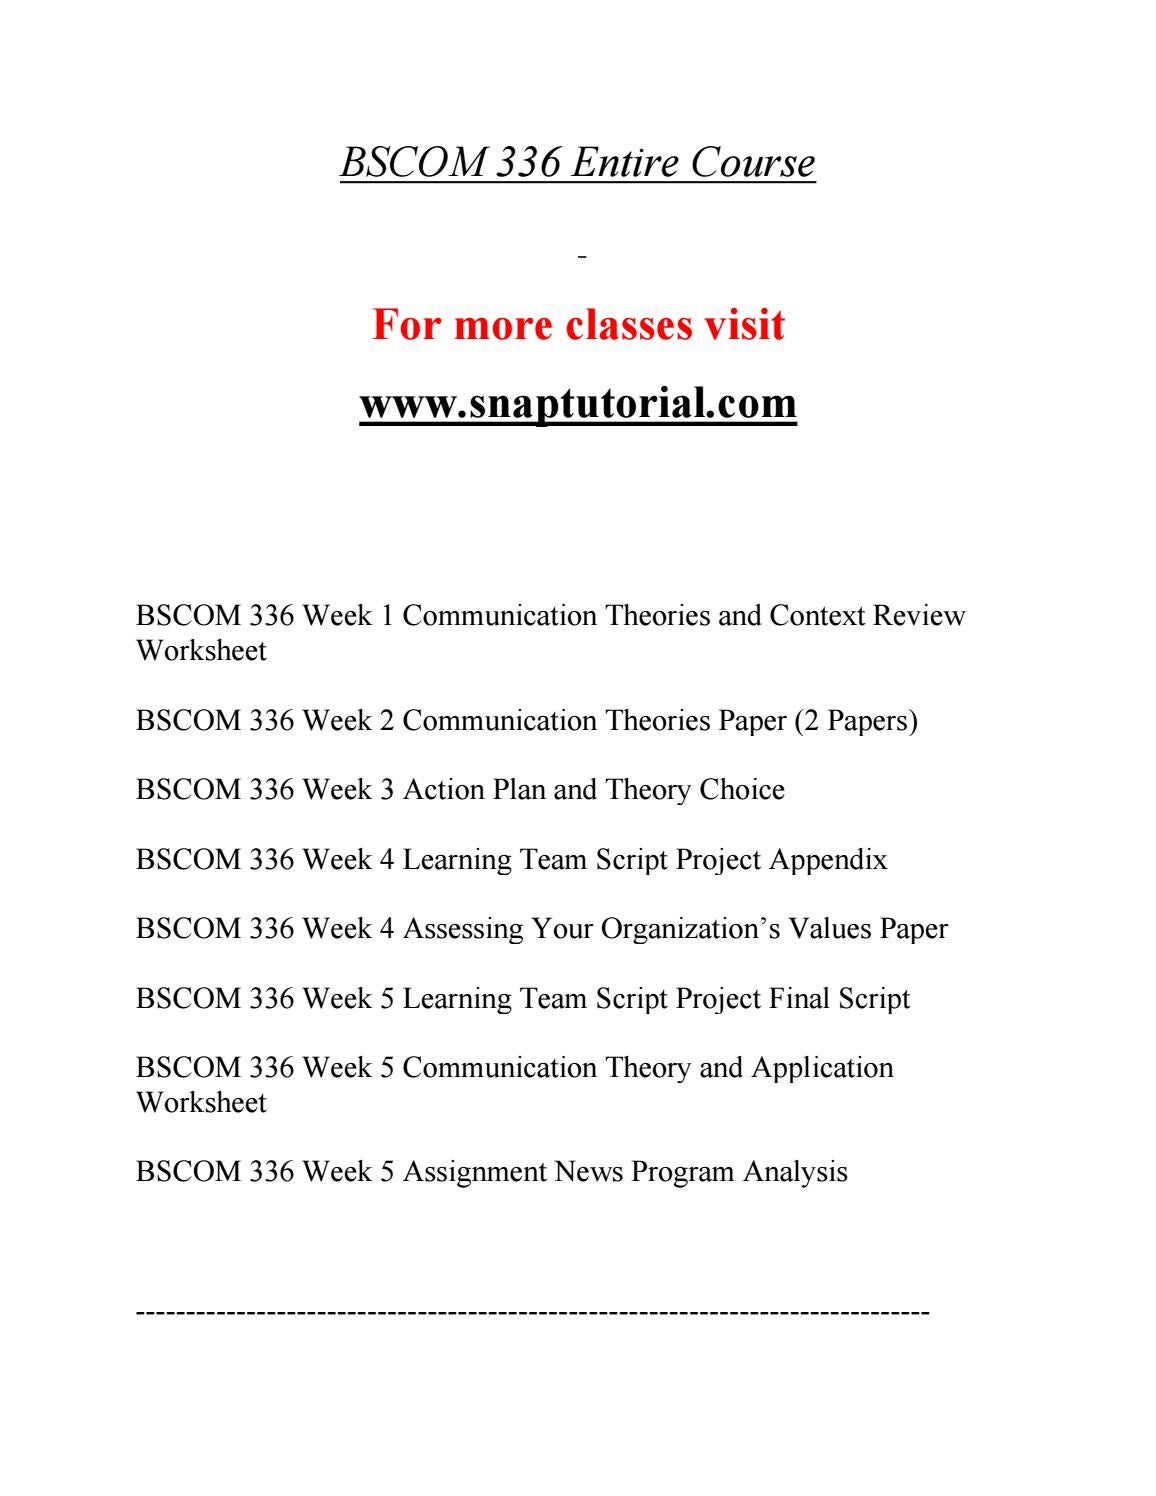 worksheet Script Analysis Worksheet bscom 336 education on your terms snaptutorial com by richardsonmacdona ld43566 4 5 issuu